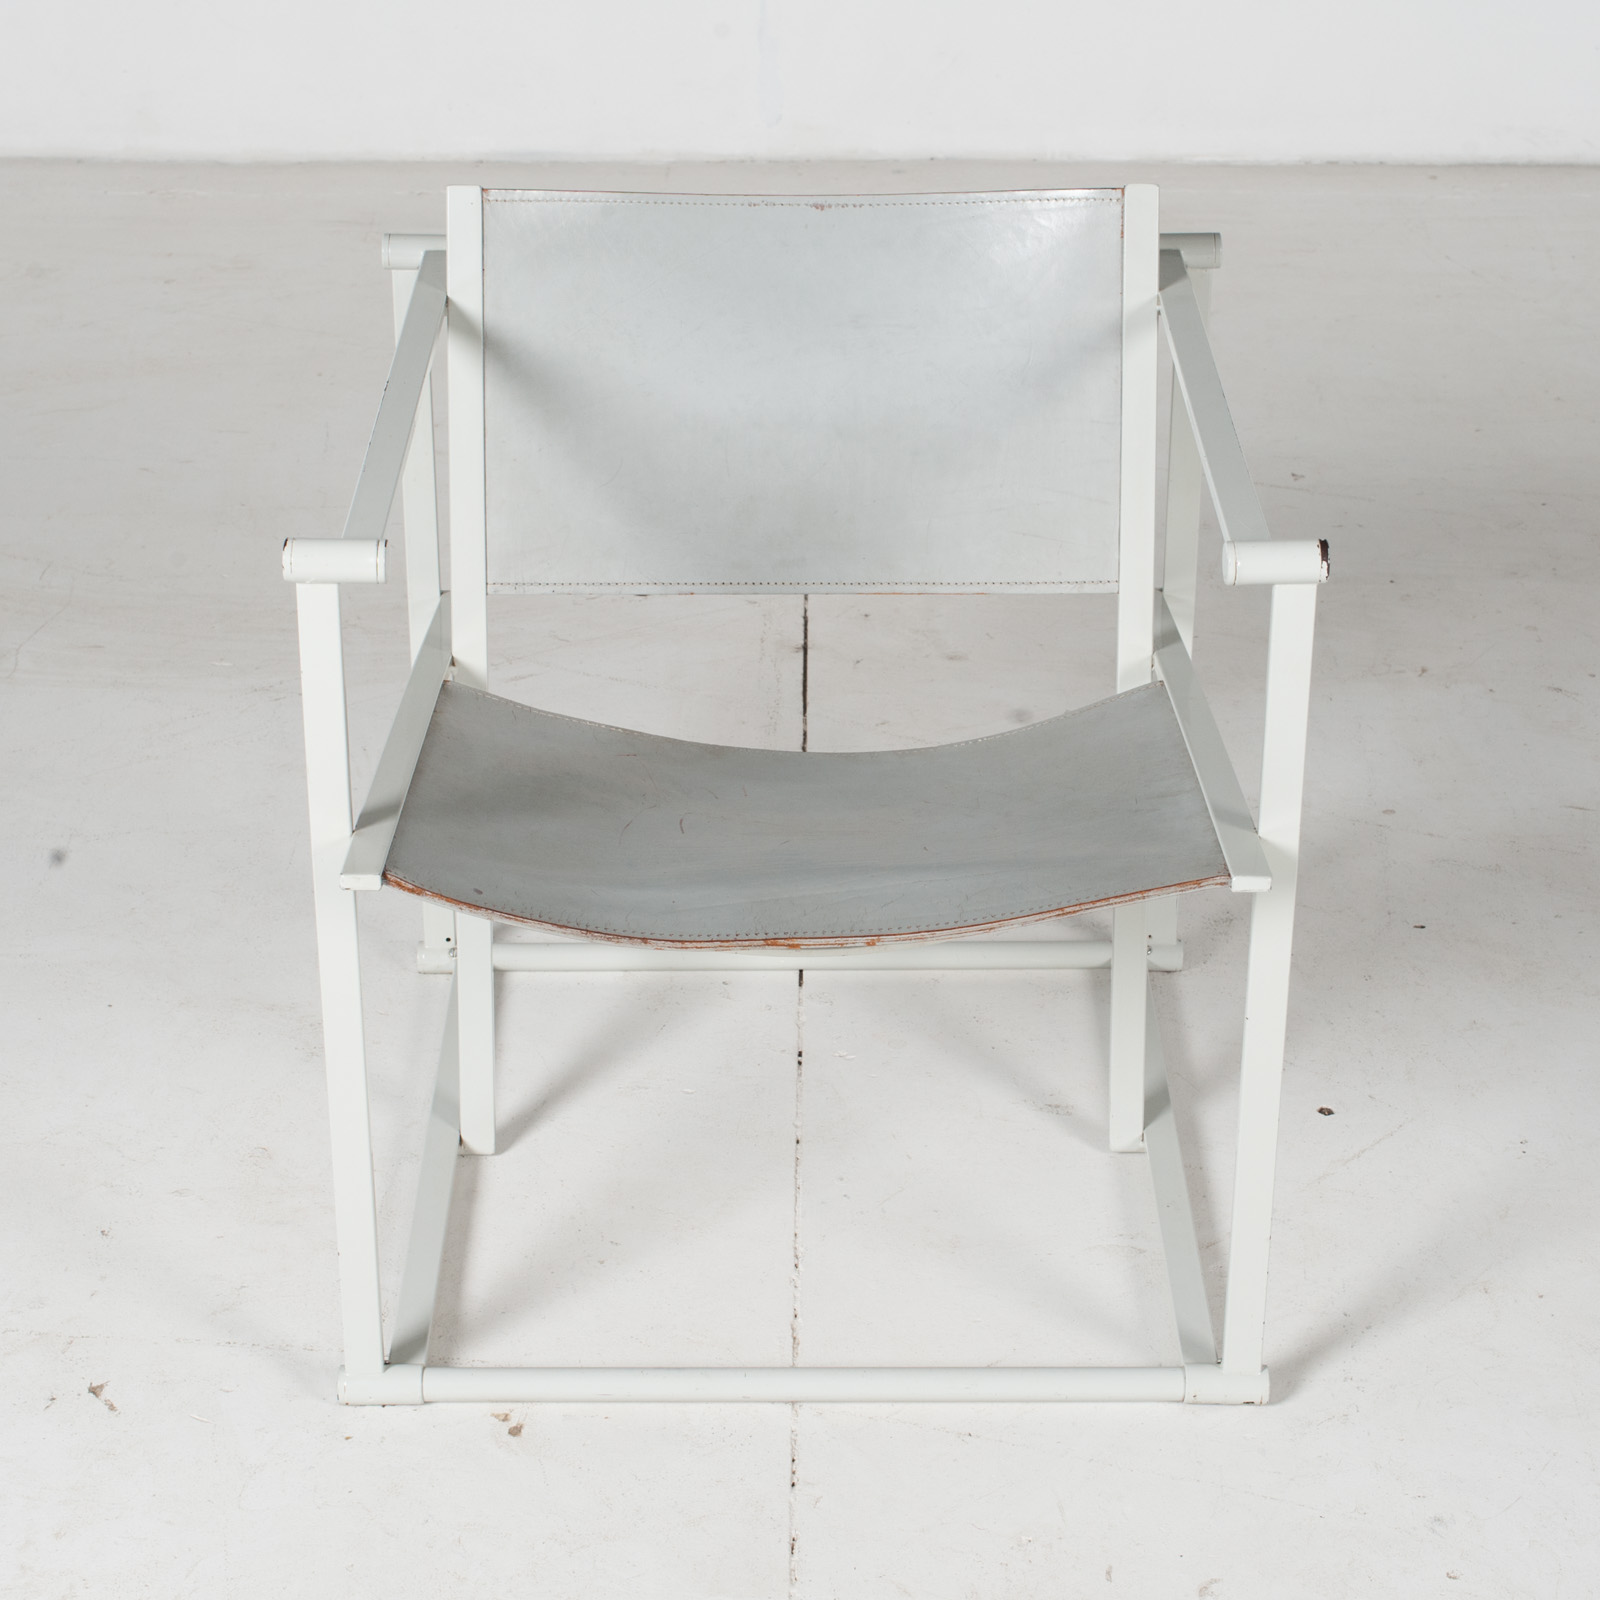 Fm60 Cubic Chairs In White Steel With Grey Leather By Radboud Van Beekum For Pastoe, The Netherlands2